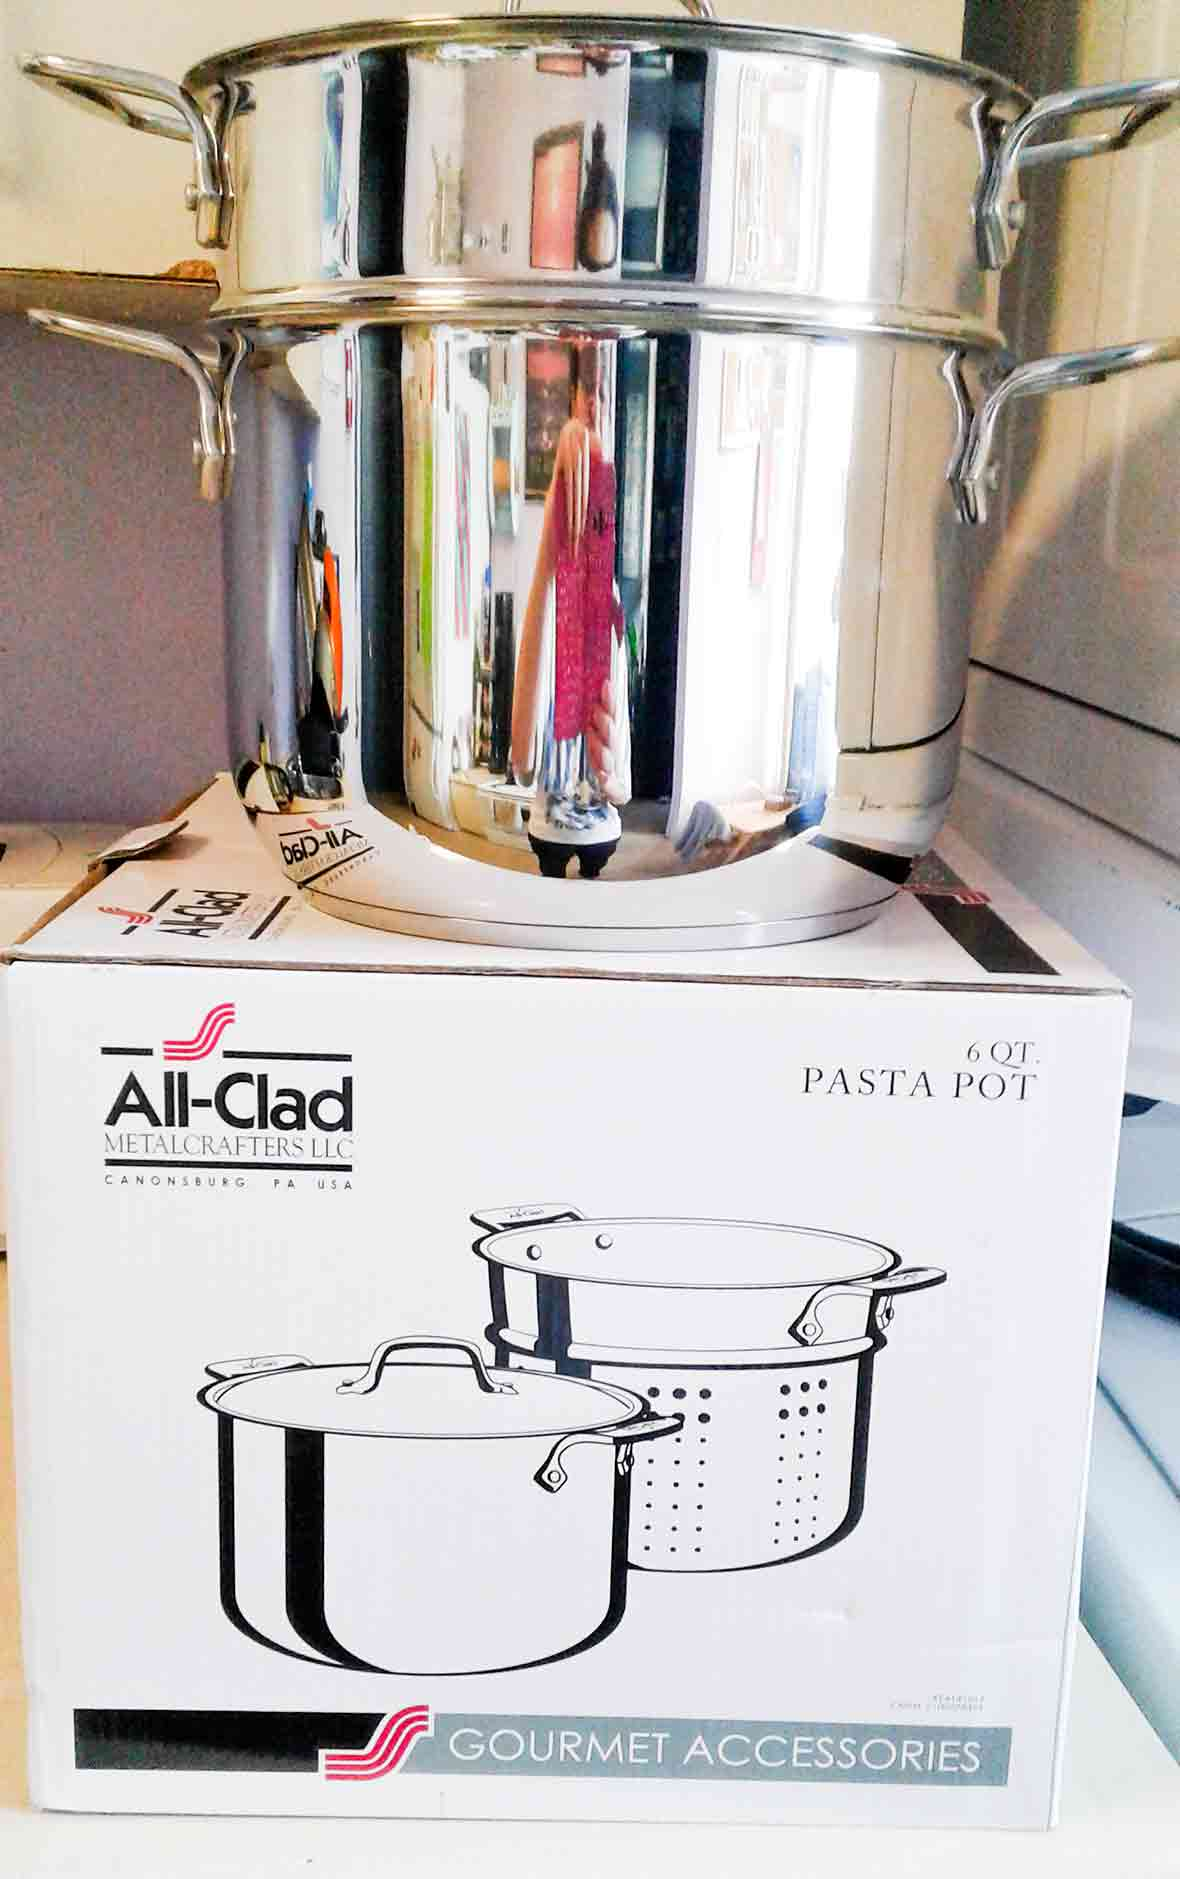 An All-Clad pasta pot sitting on its box